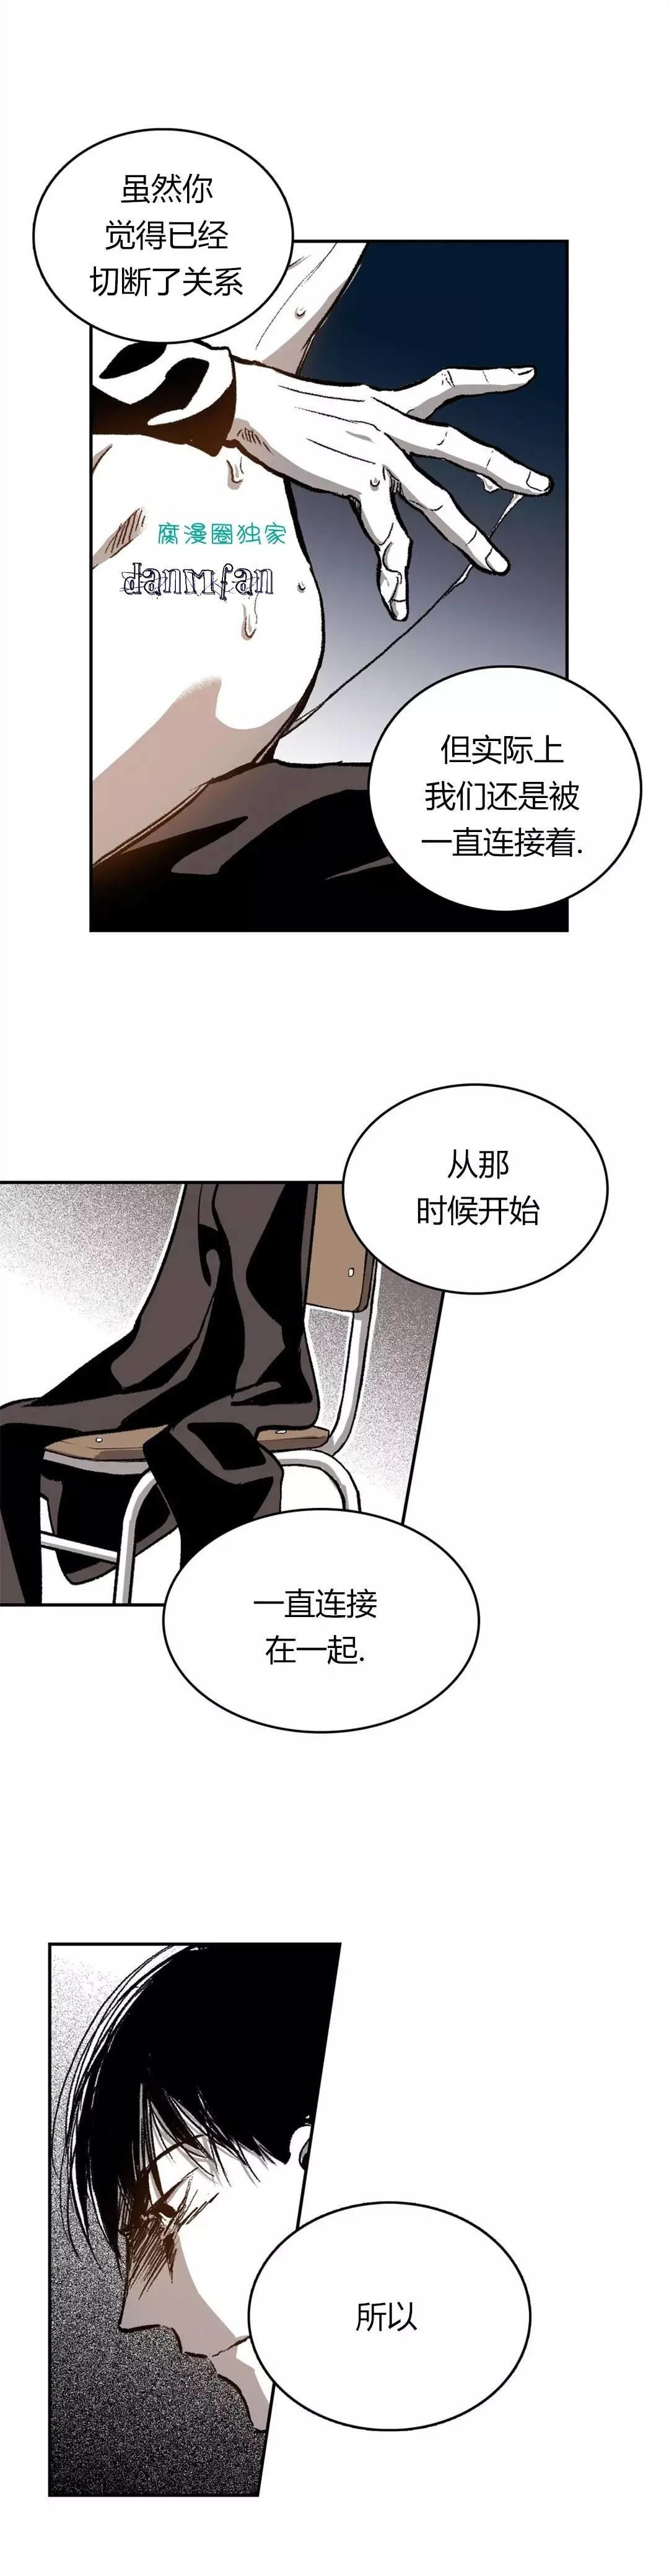 Warehouse chapter 26 16